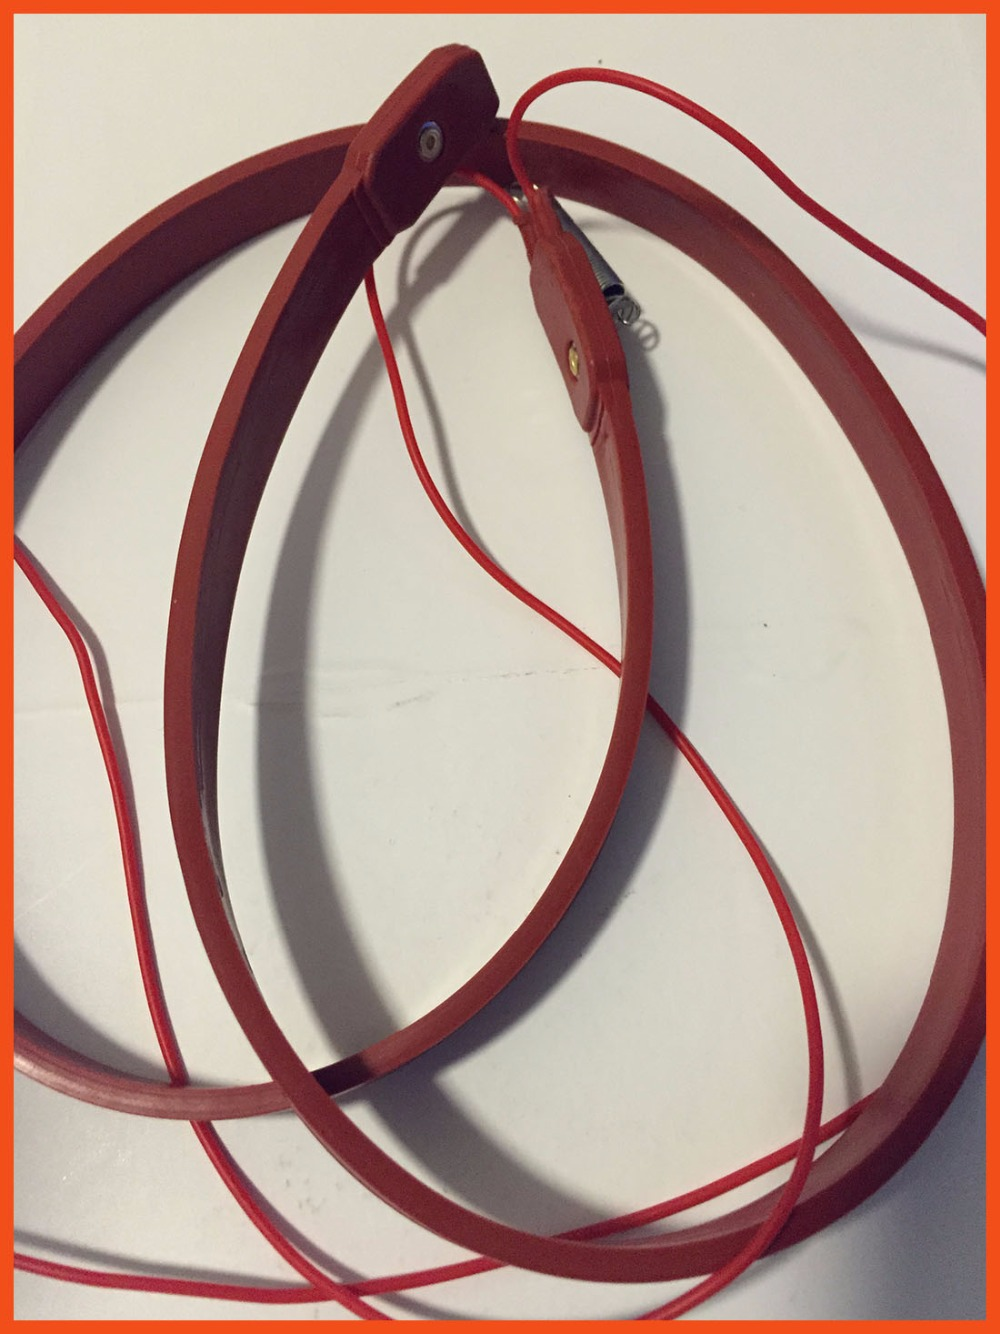 30mmx1M 80W 220V Industrial laboratory Electric heating Waterproof Flexible Silicone Rubber Heater Belt Unfreezer for Pipeline